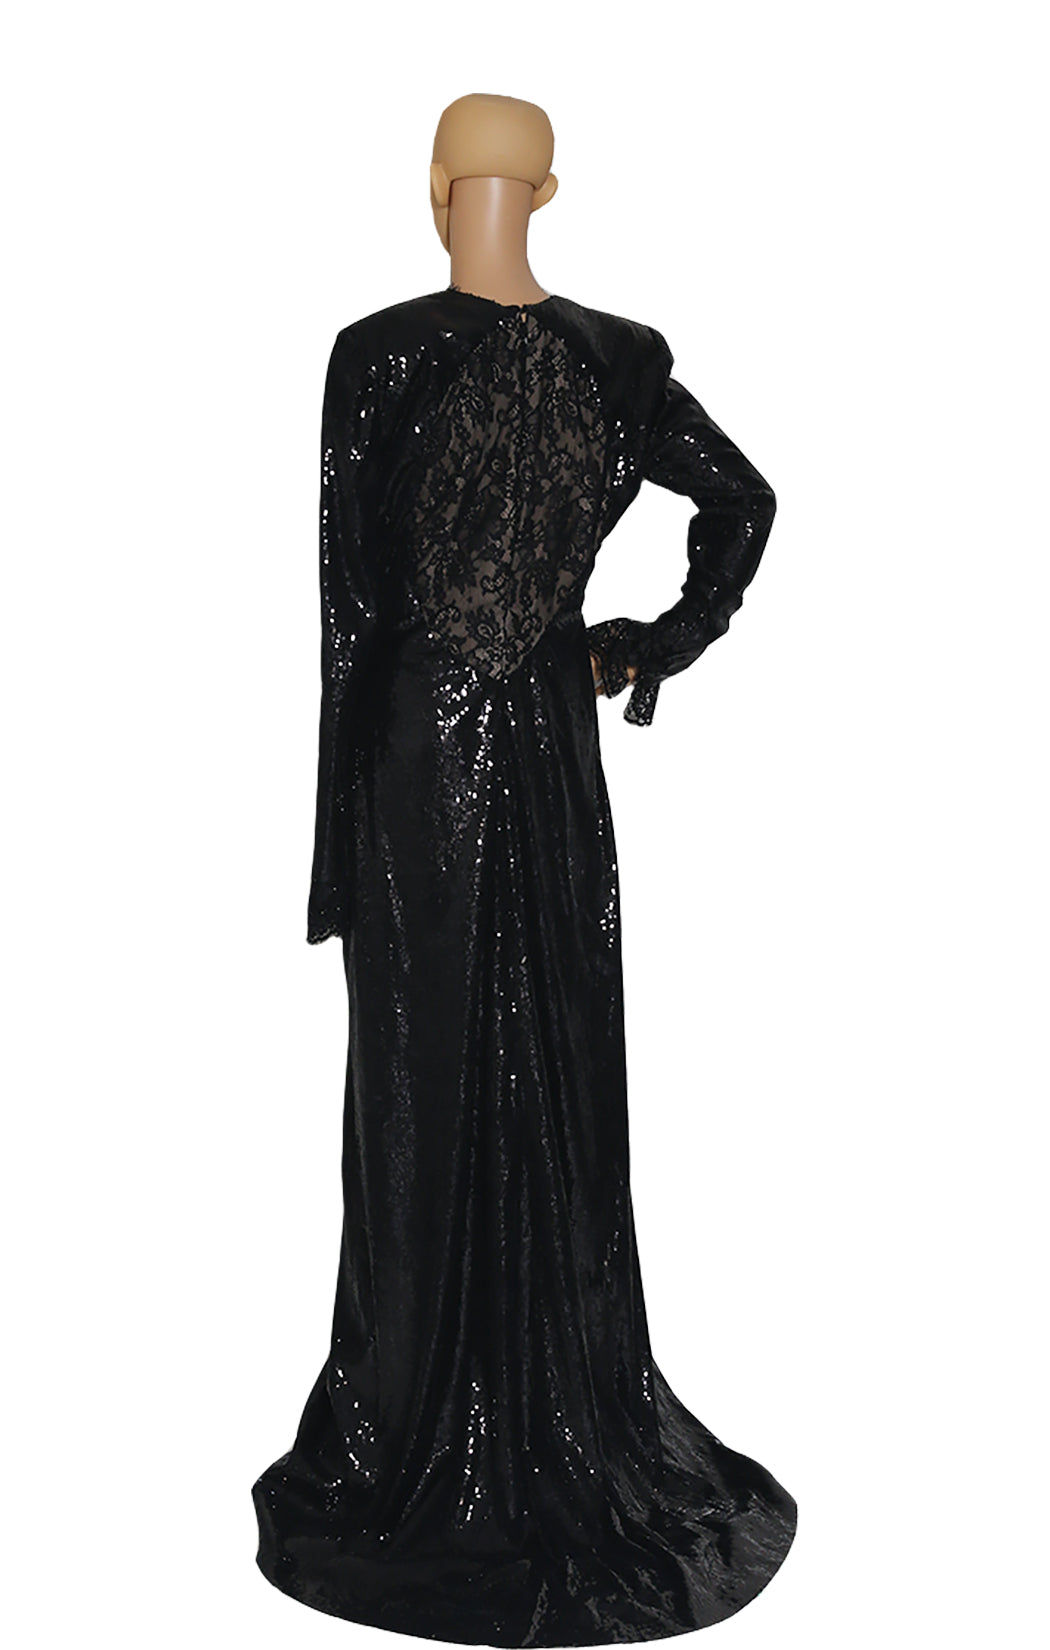 Back view of PETER DUNDAS Black Lace Beaded Long Dress